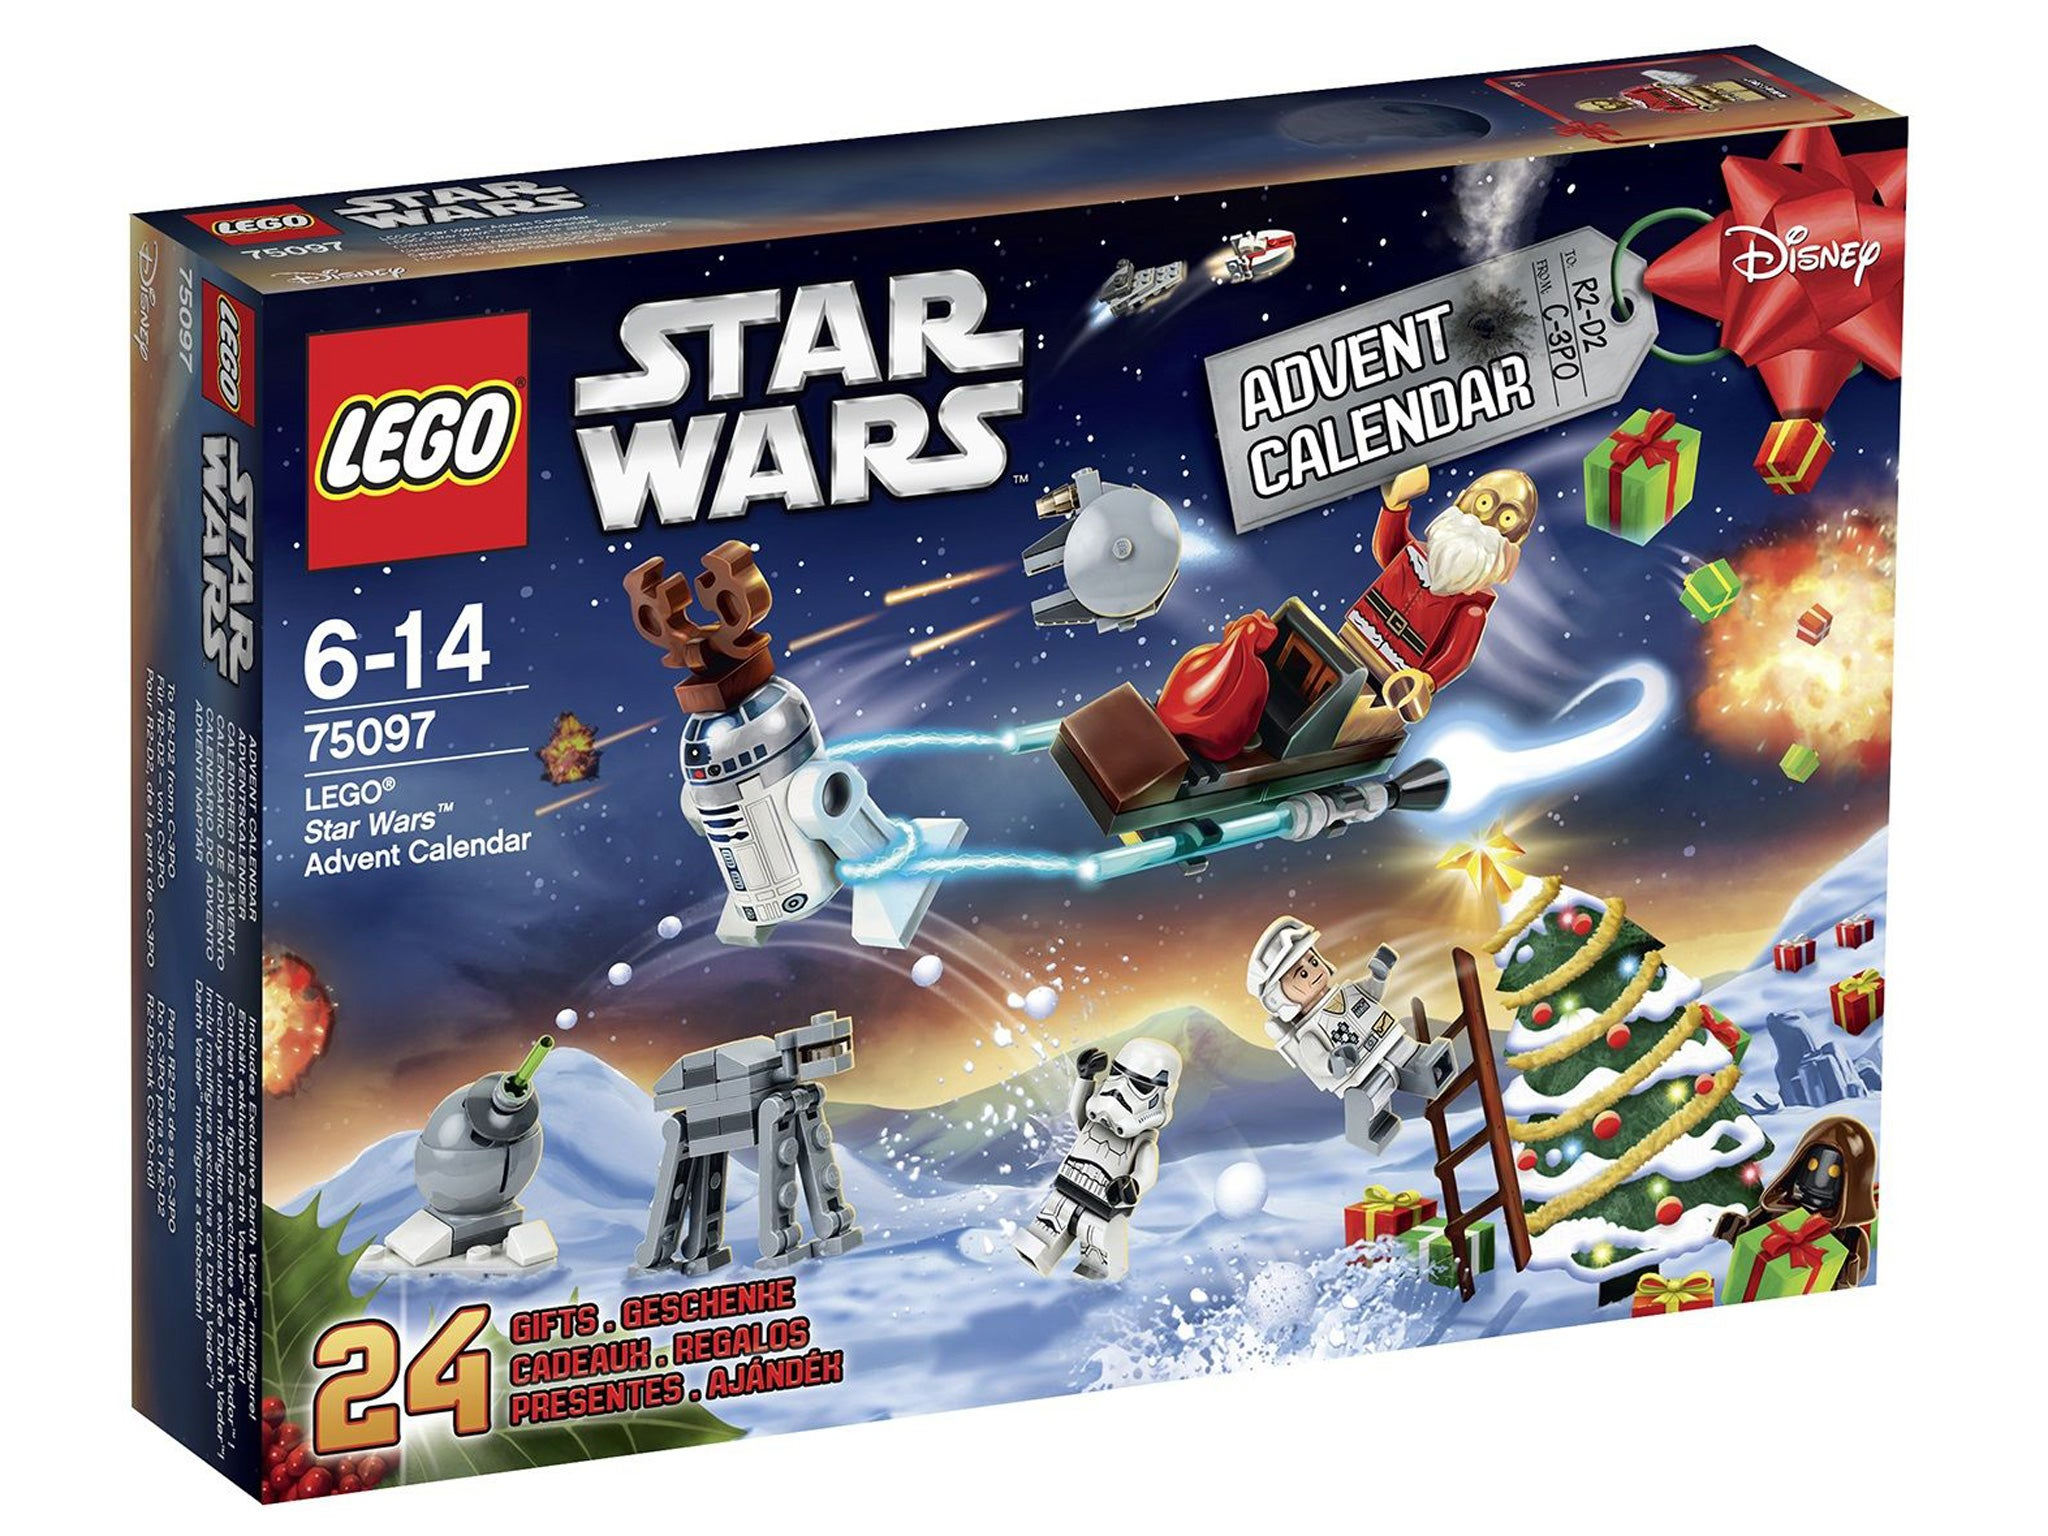 Christmas 2015 18 Best Star Wars Gifts The Independent